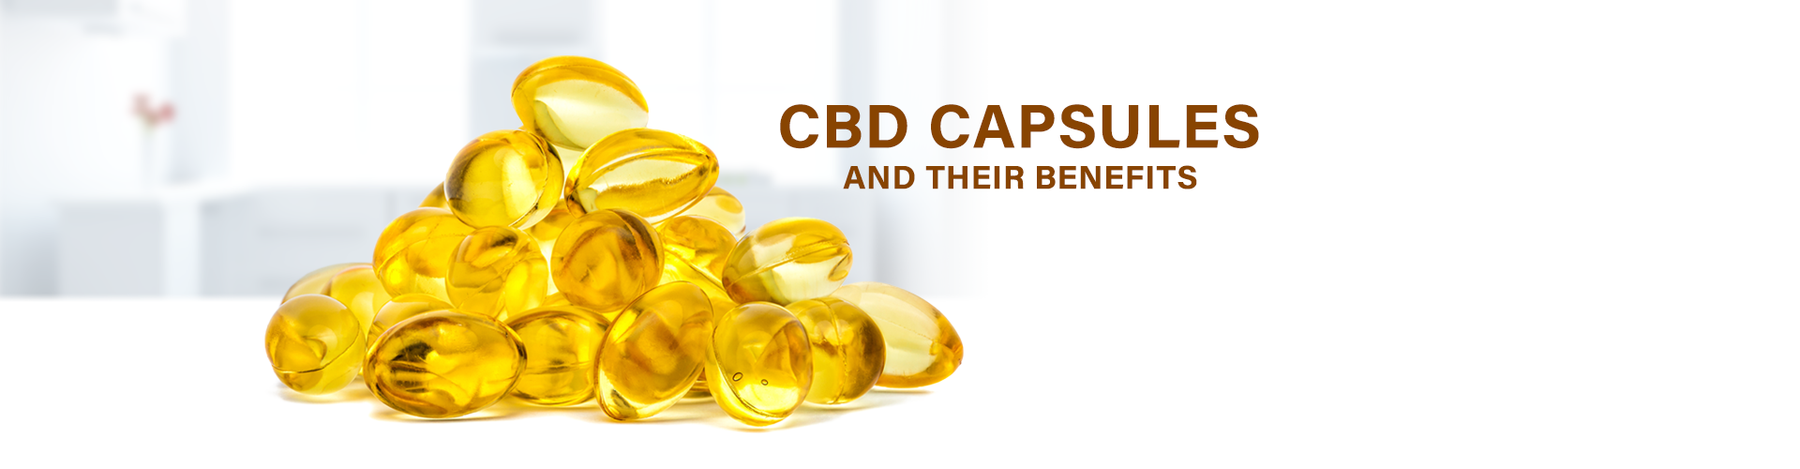 CBD Capsules and Their Benefits